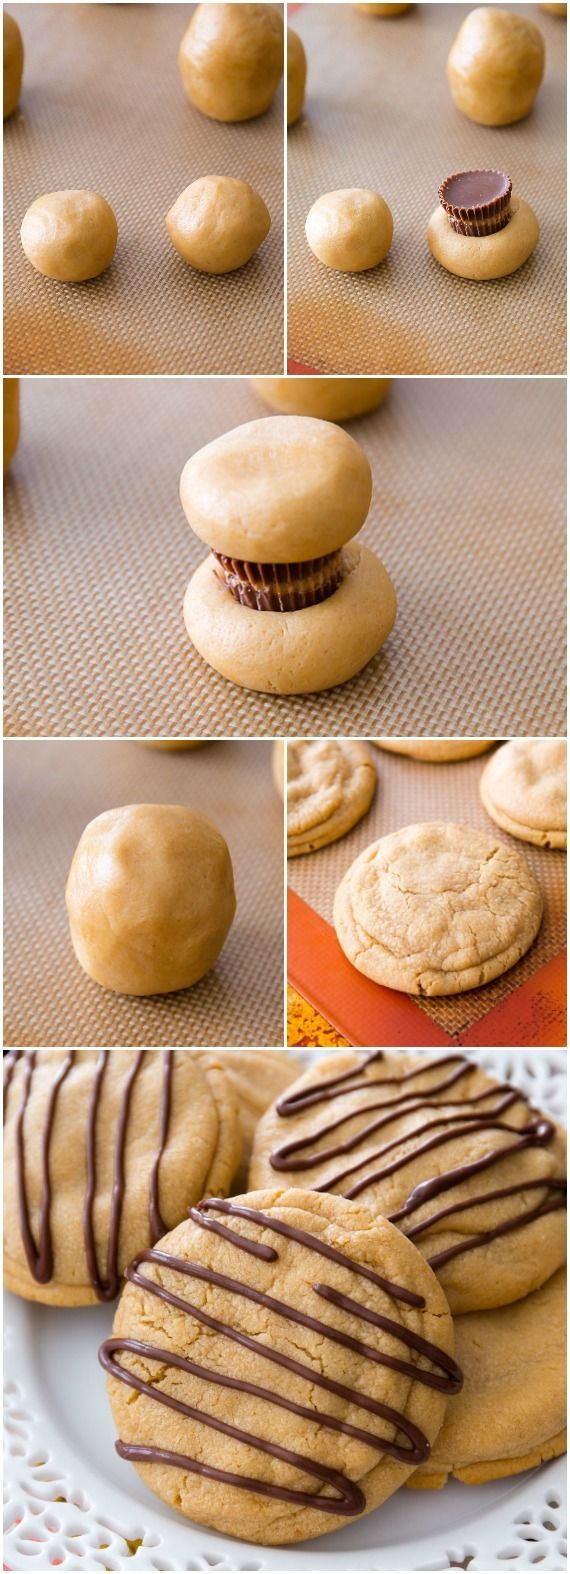 Reese's Stuffed Peanut Butter Cookies. Soft, chewy, and overloaded with peanut but